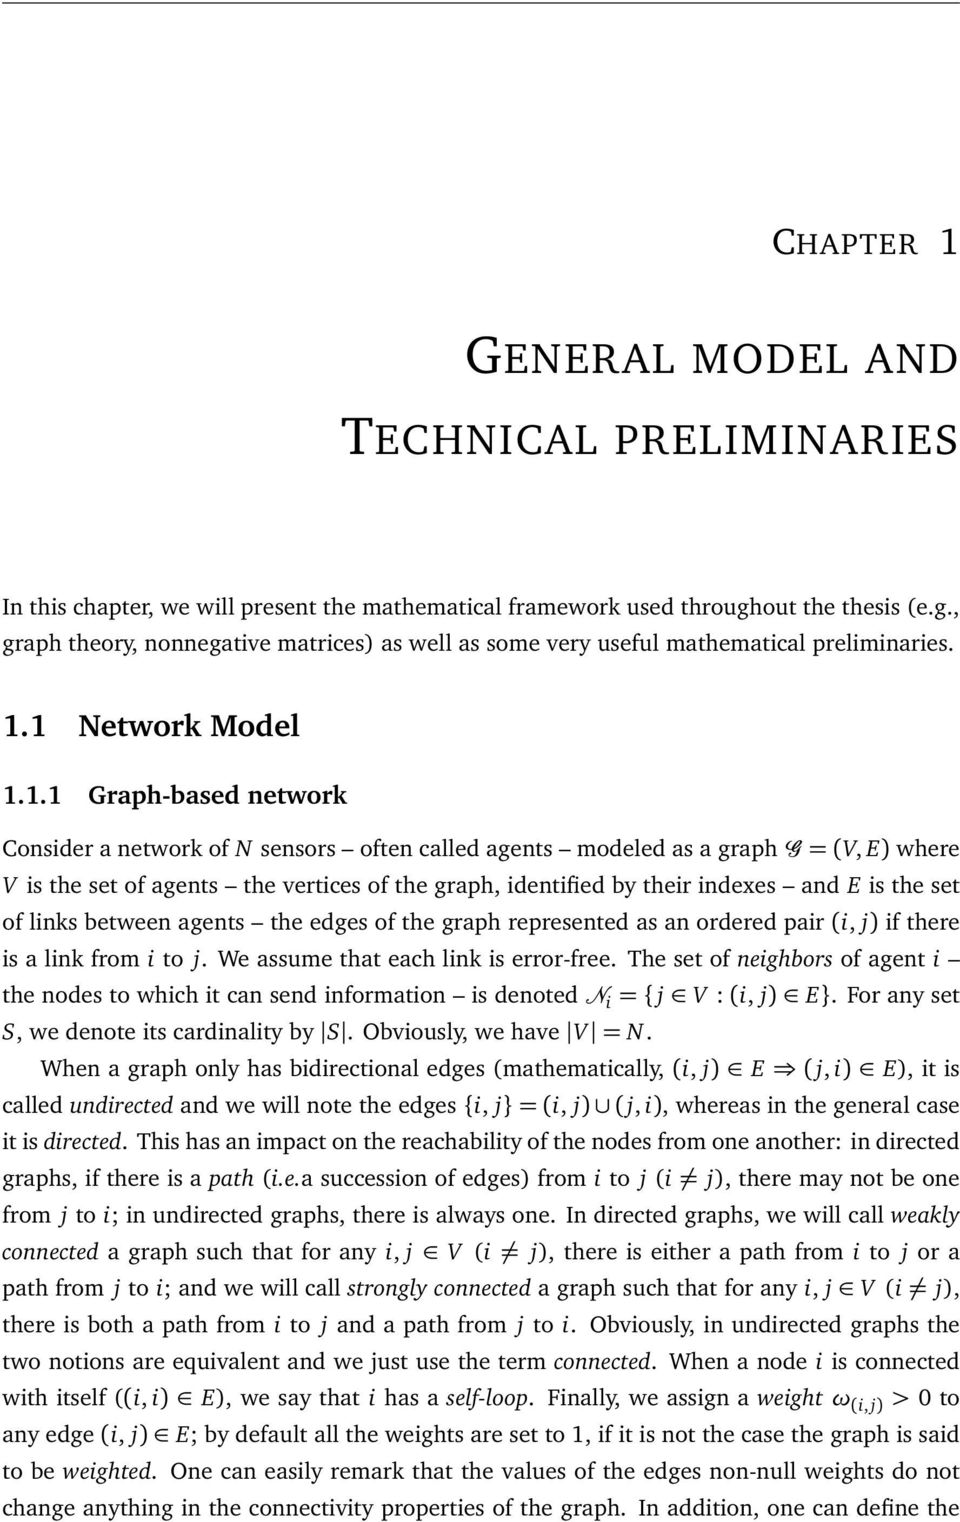 1 Network Model 1.1.1 Graph-based network Consider a network of N sensors often called agents modeled as a graph=(v, E) where V is the set of agents the vertices of the graph, identified by their